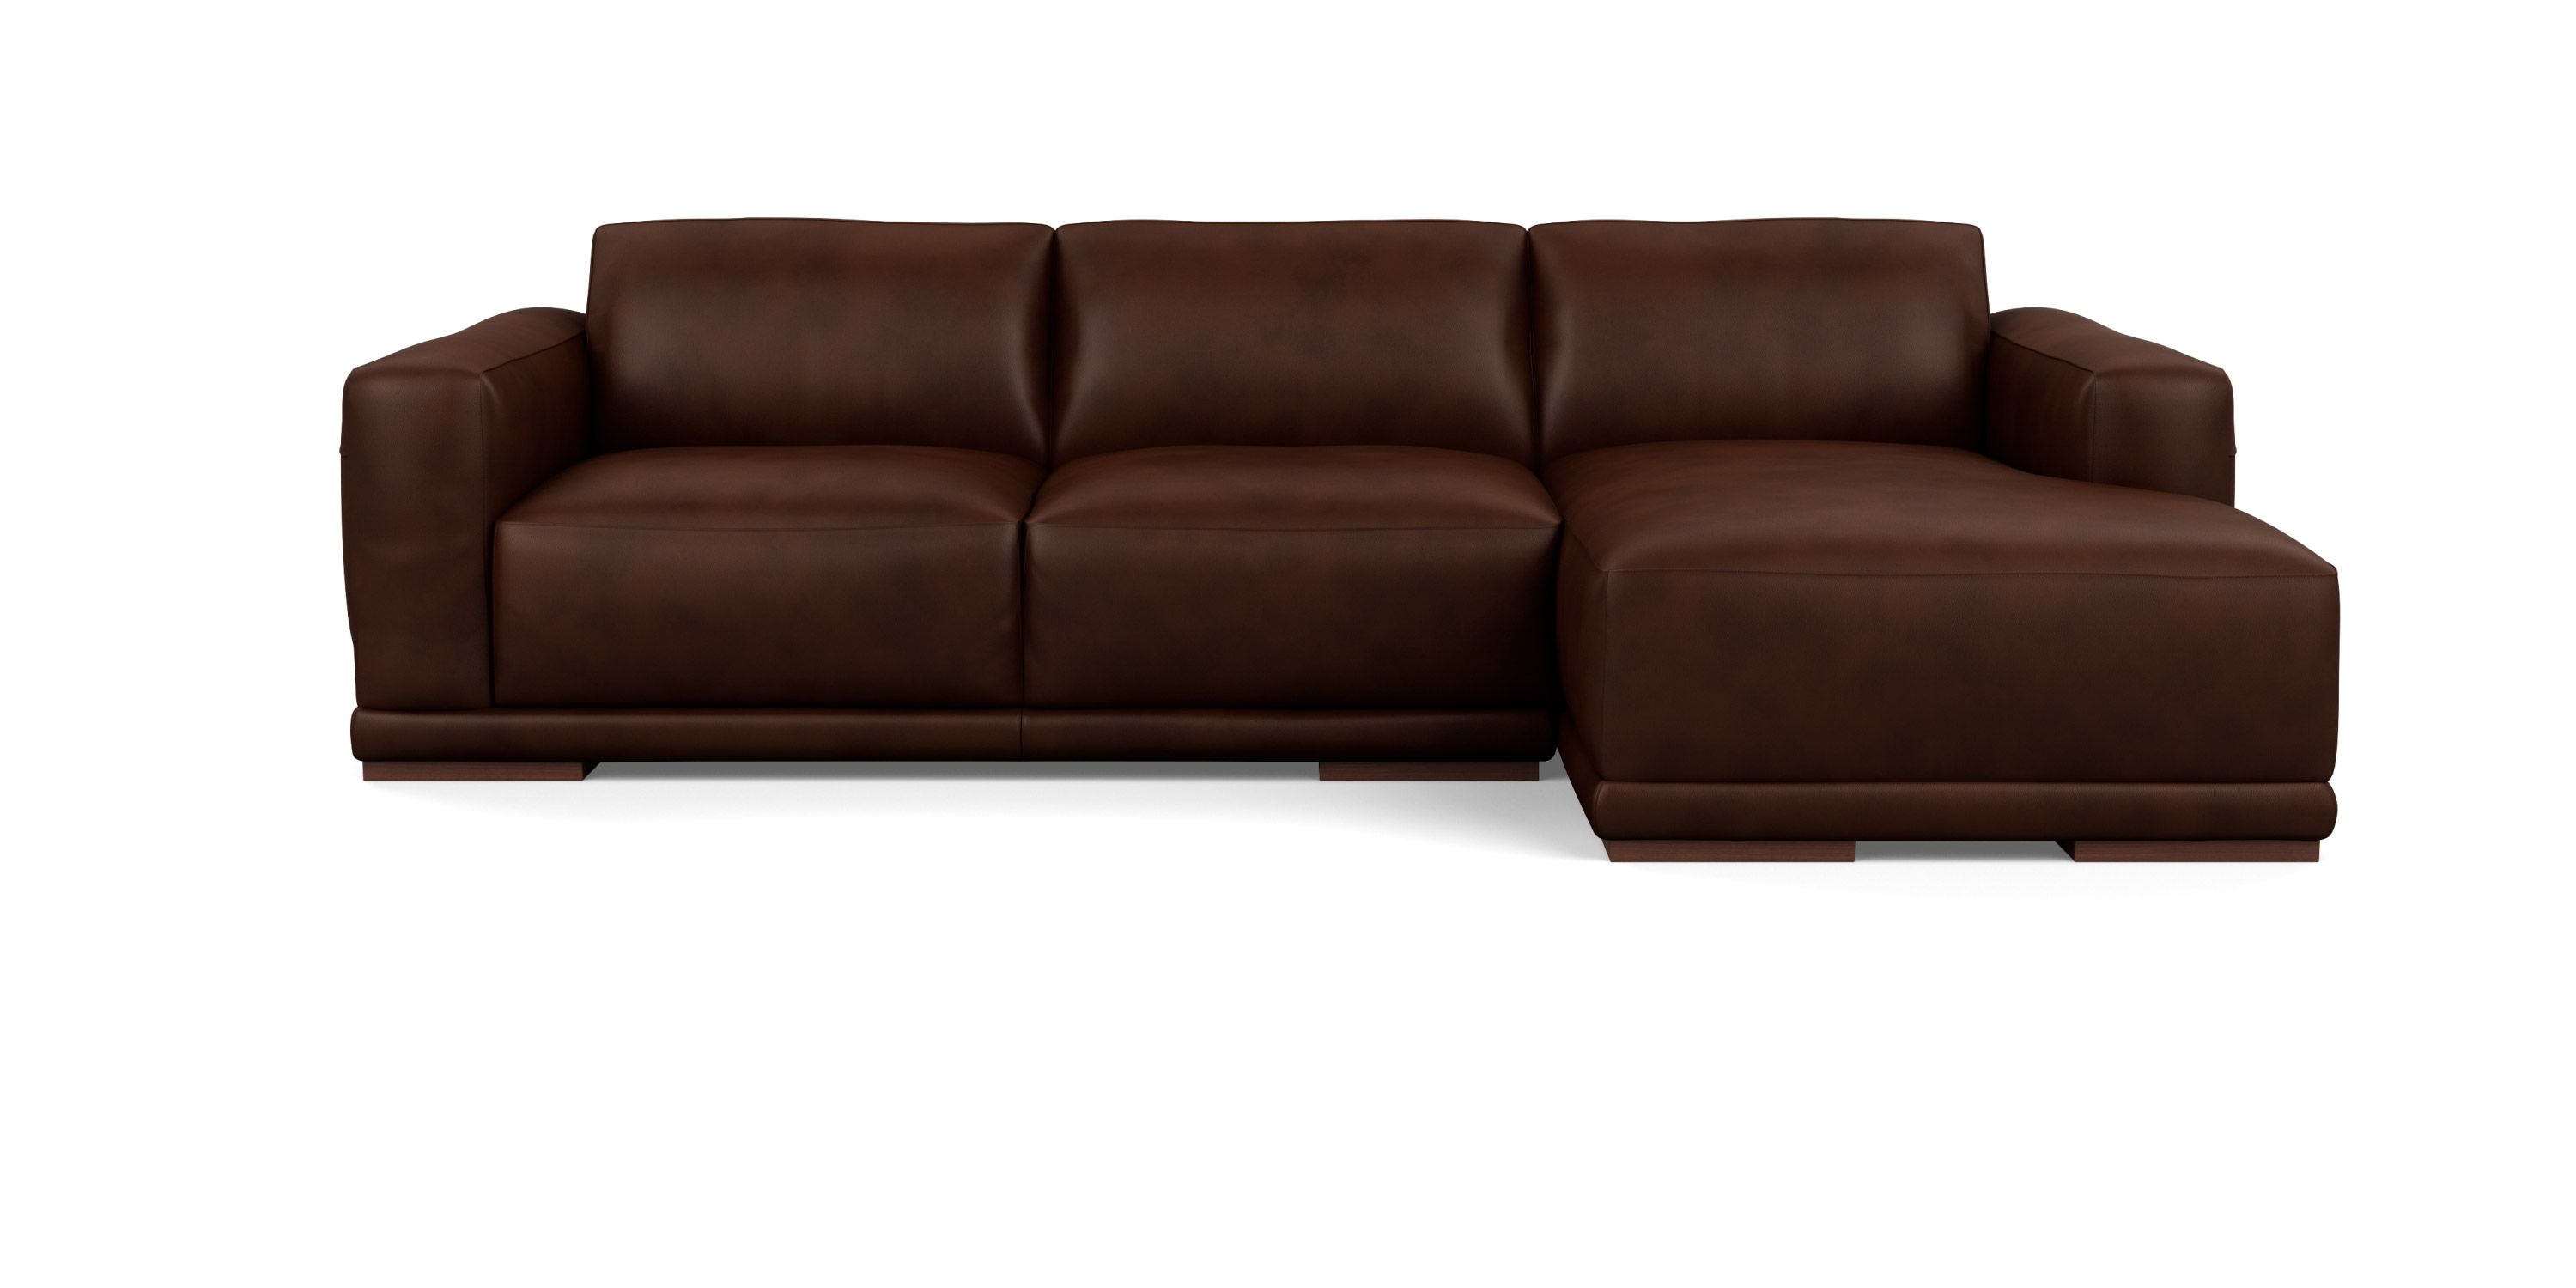 Softy 2 5 Seater Sofa with Right hand Chaise featuring Windsor